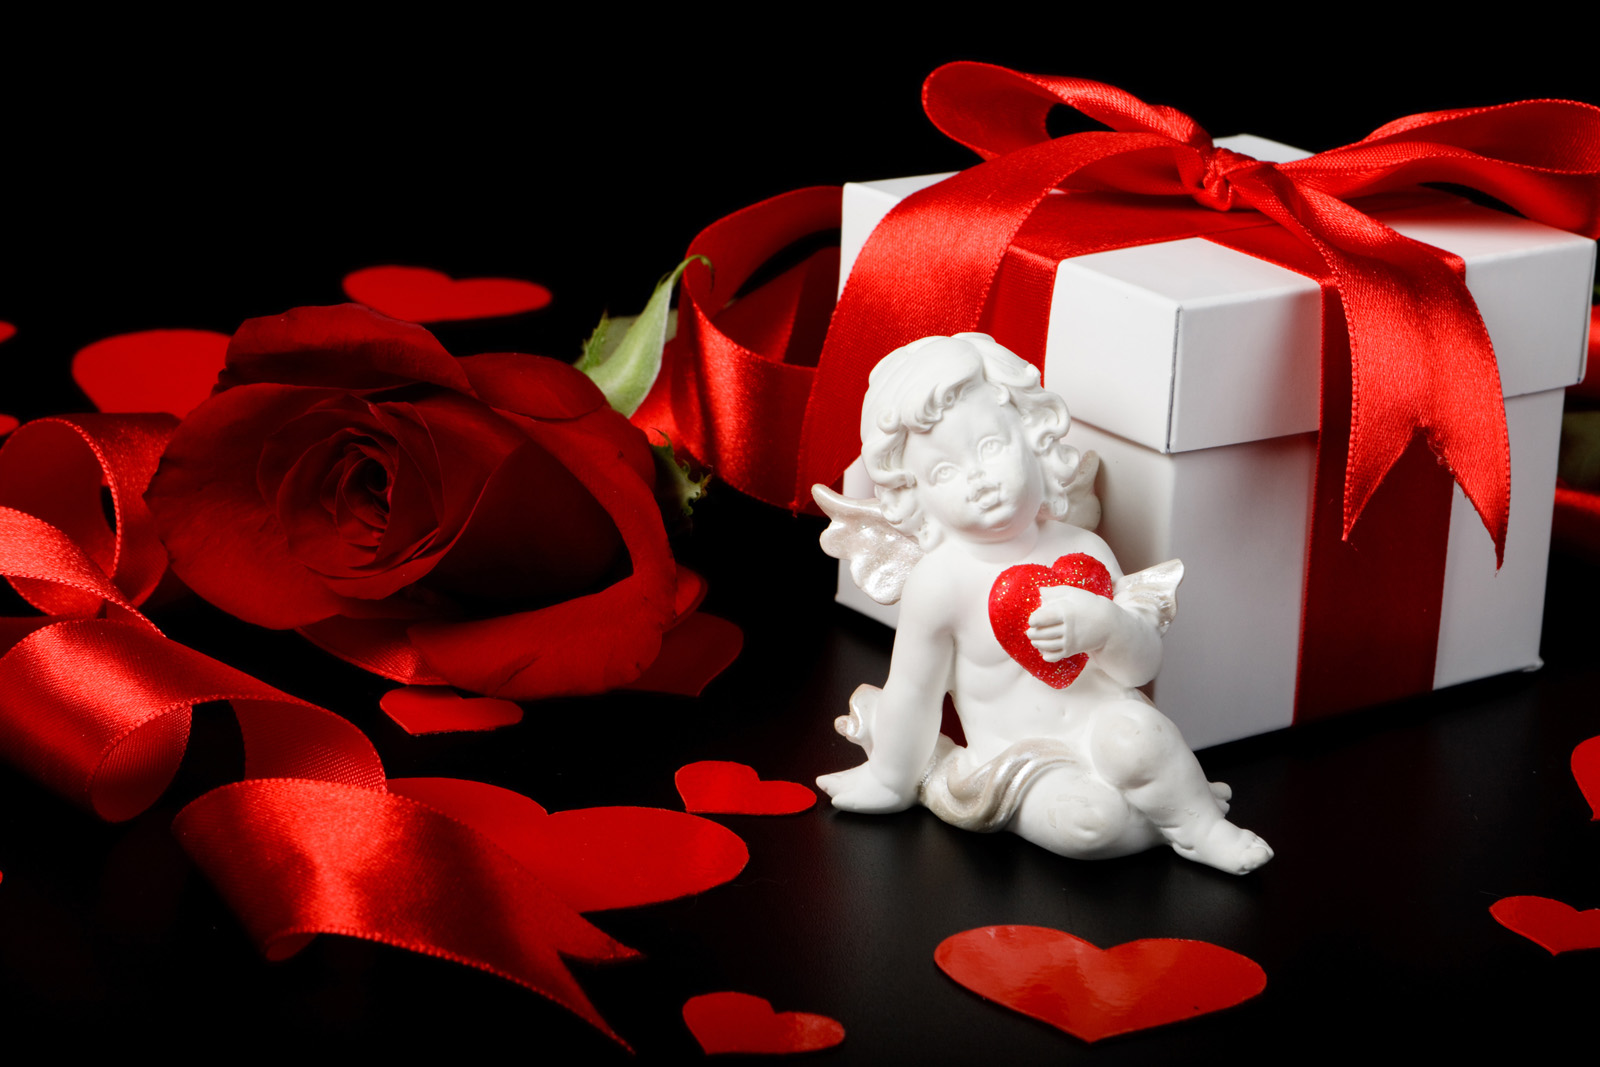 Rose gift box and sculpture 51420